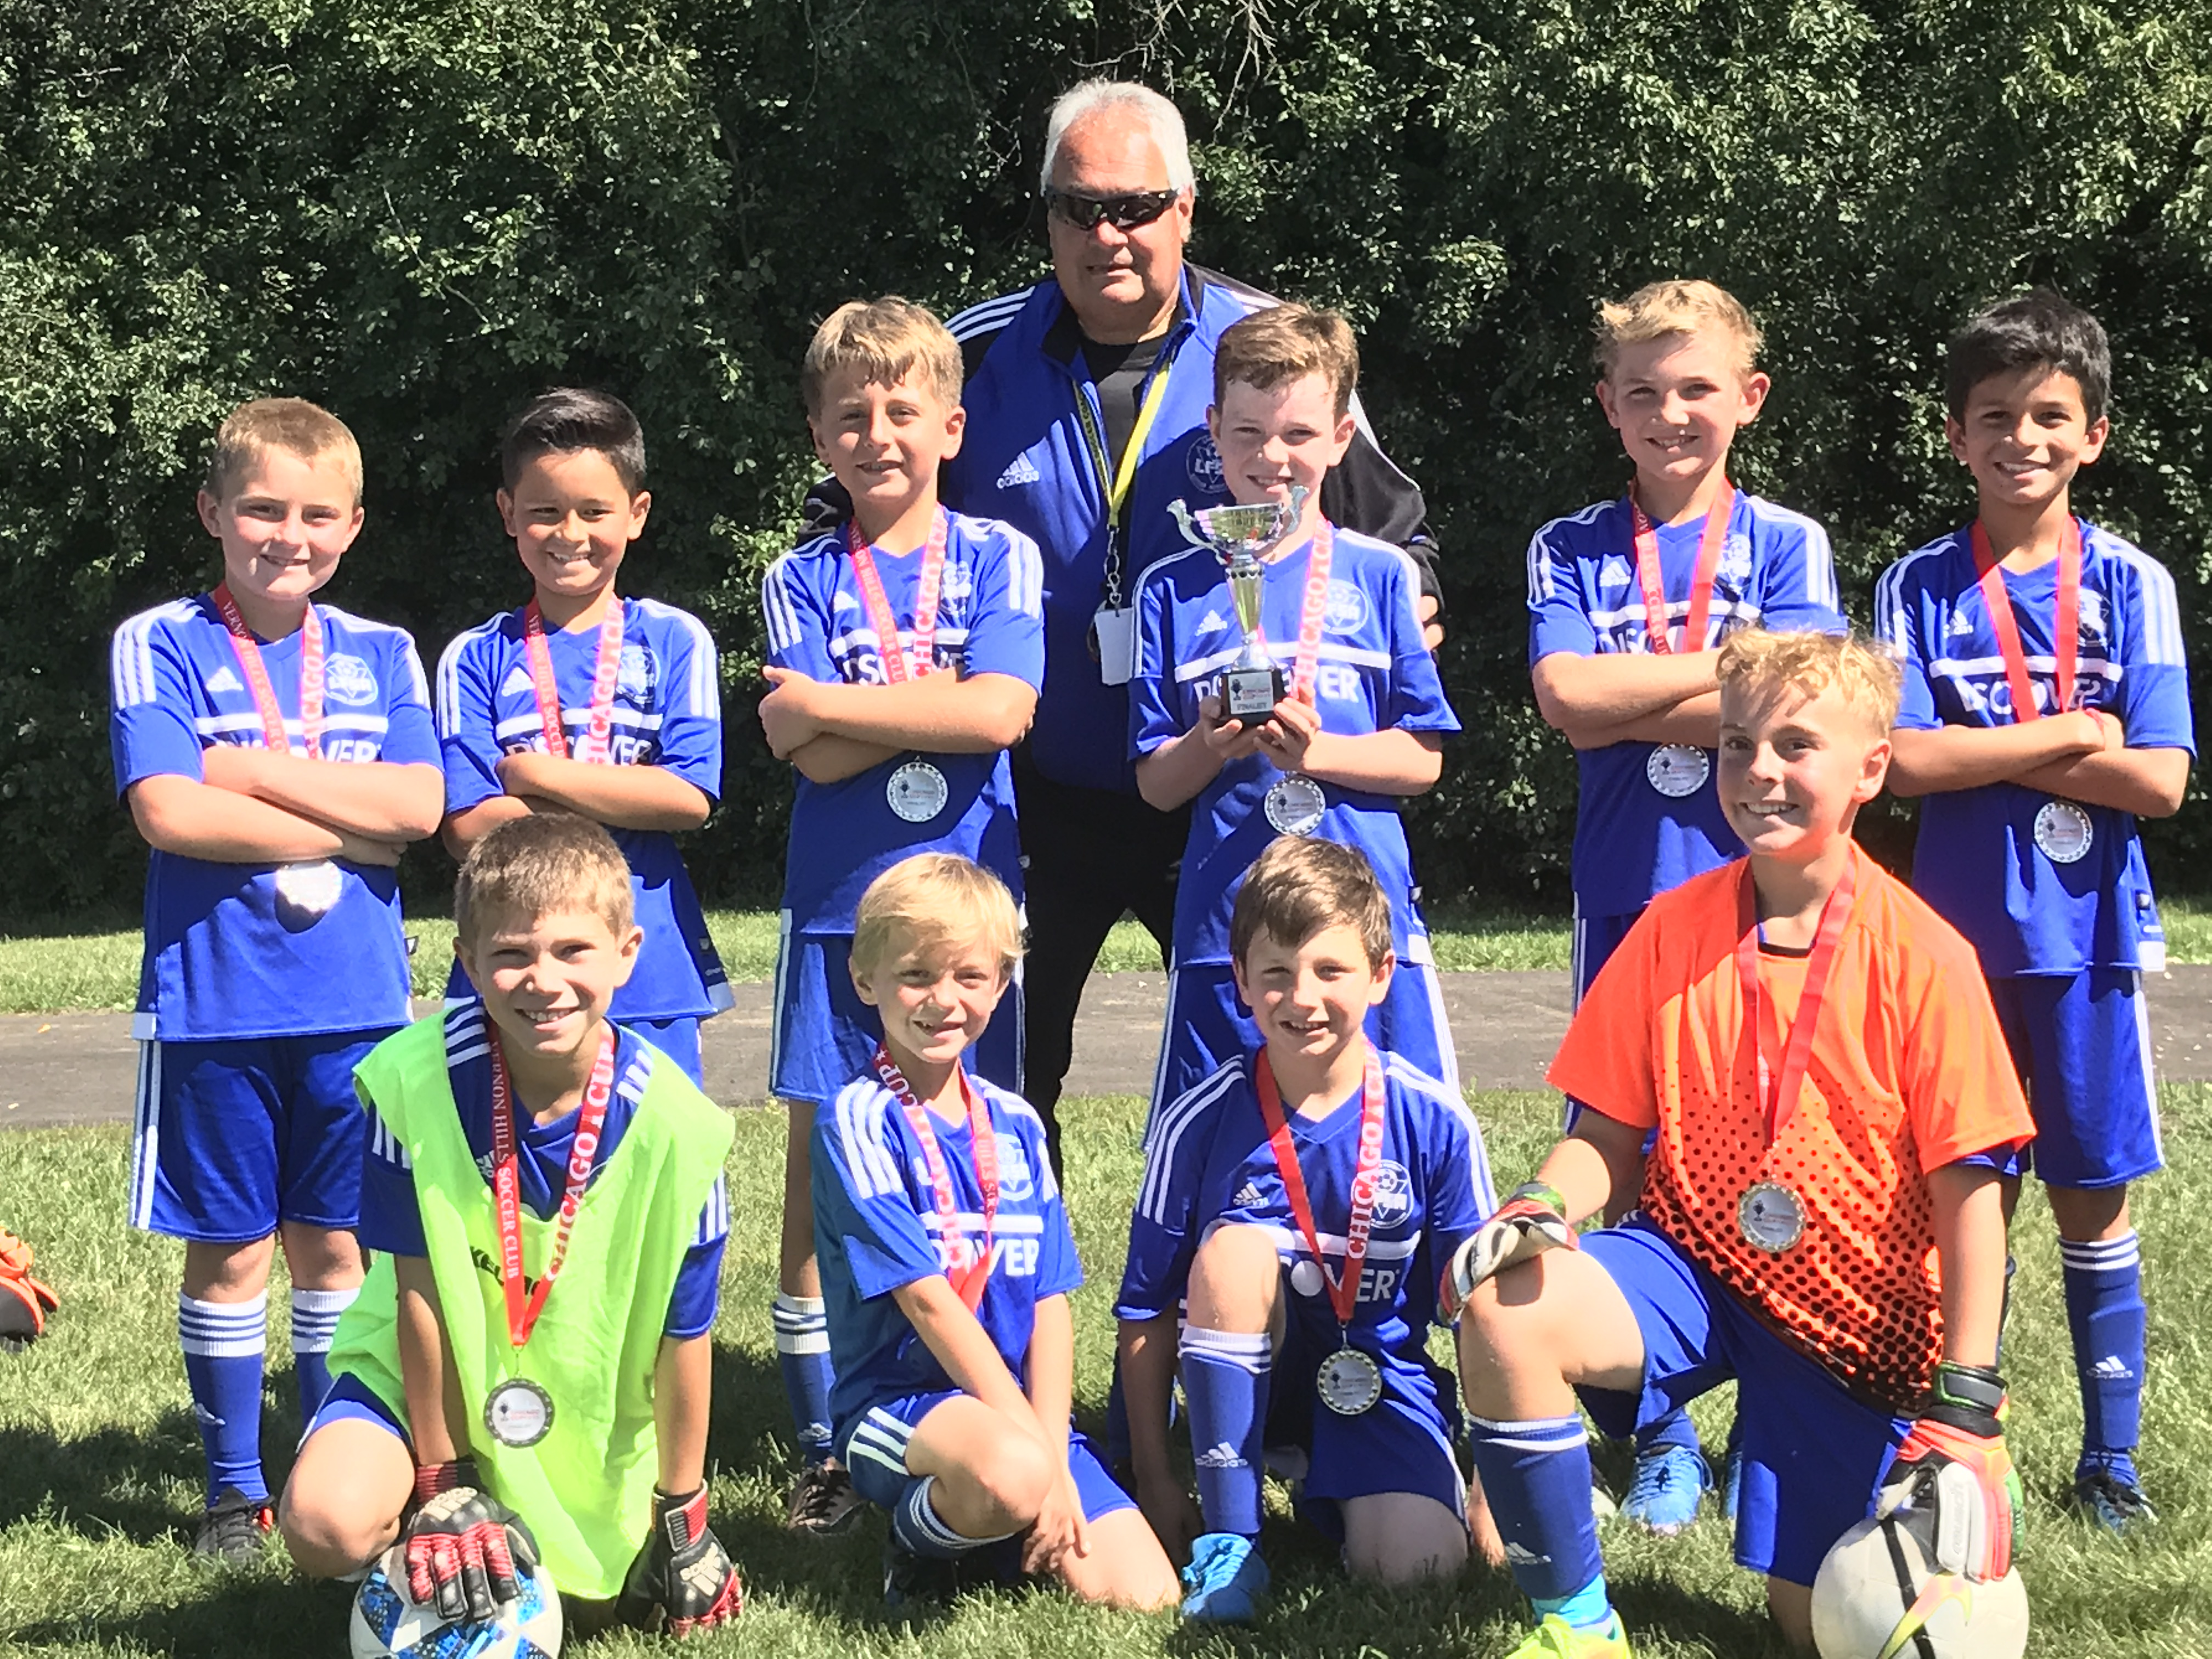 BU10 Chelsea are finalists at the Chicago Cup over Labor Day